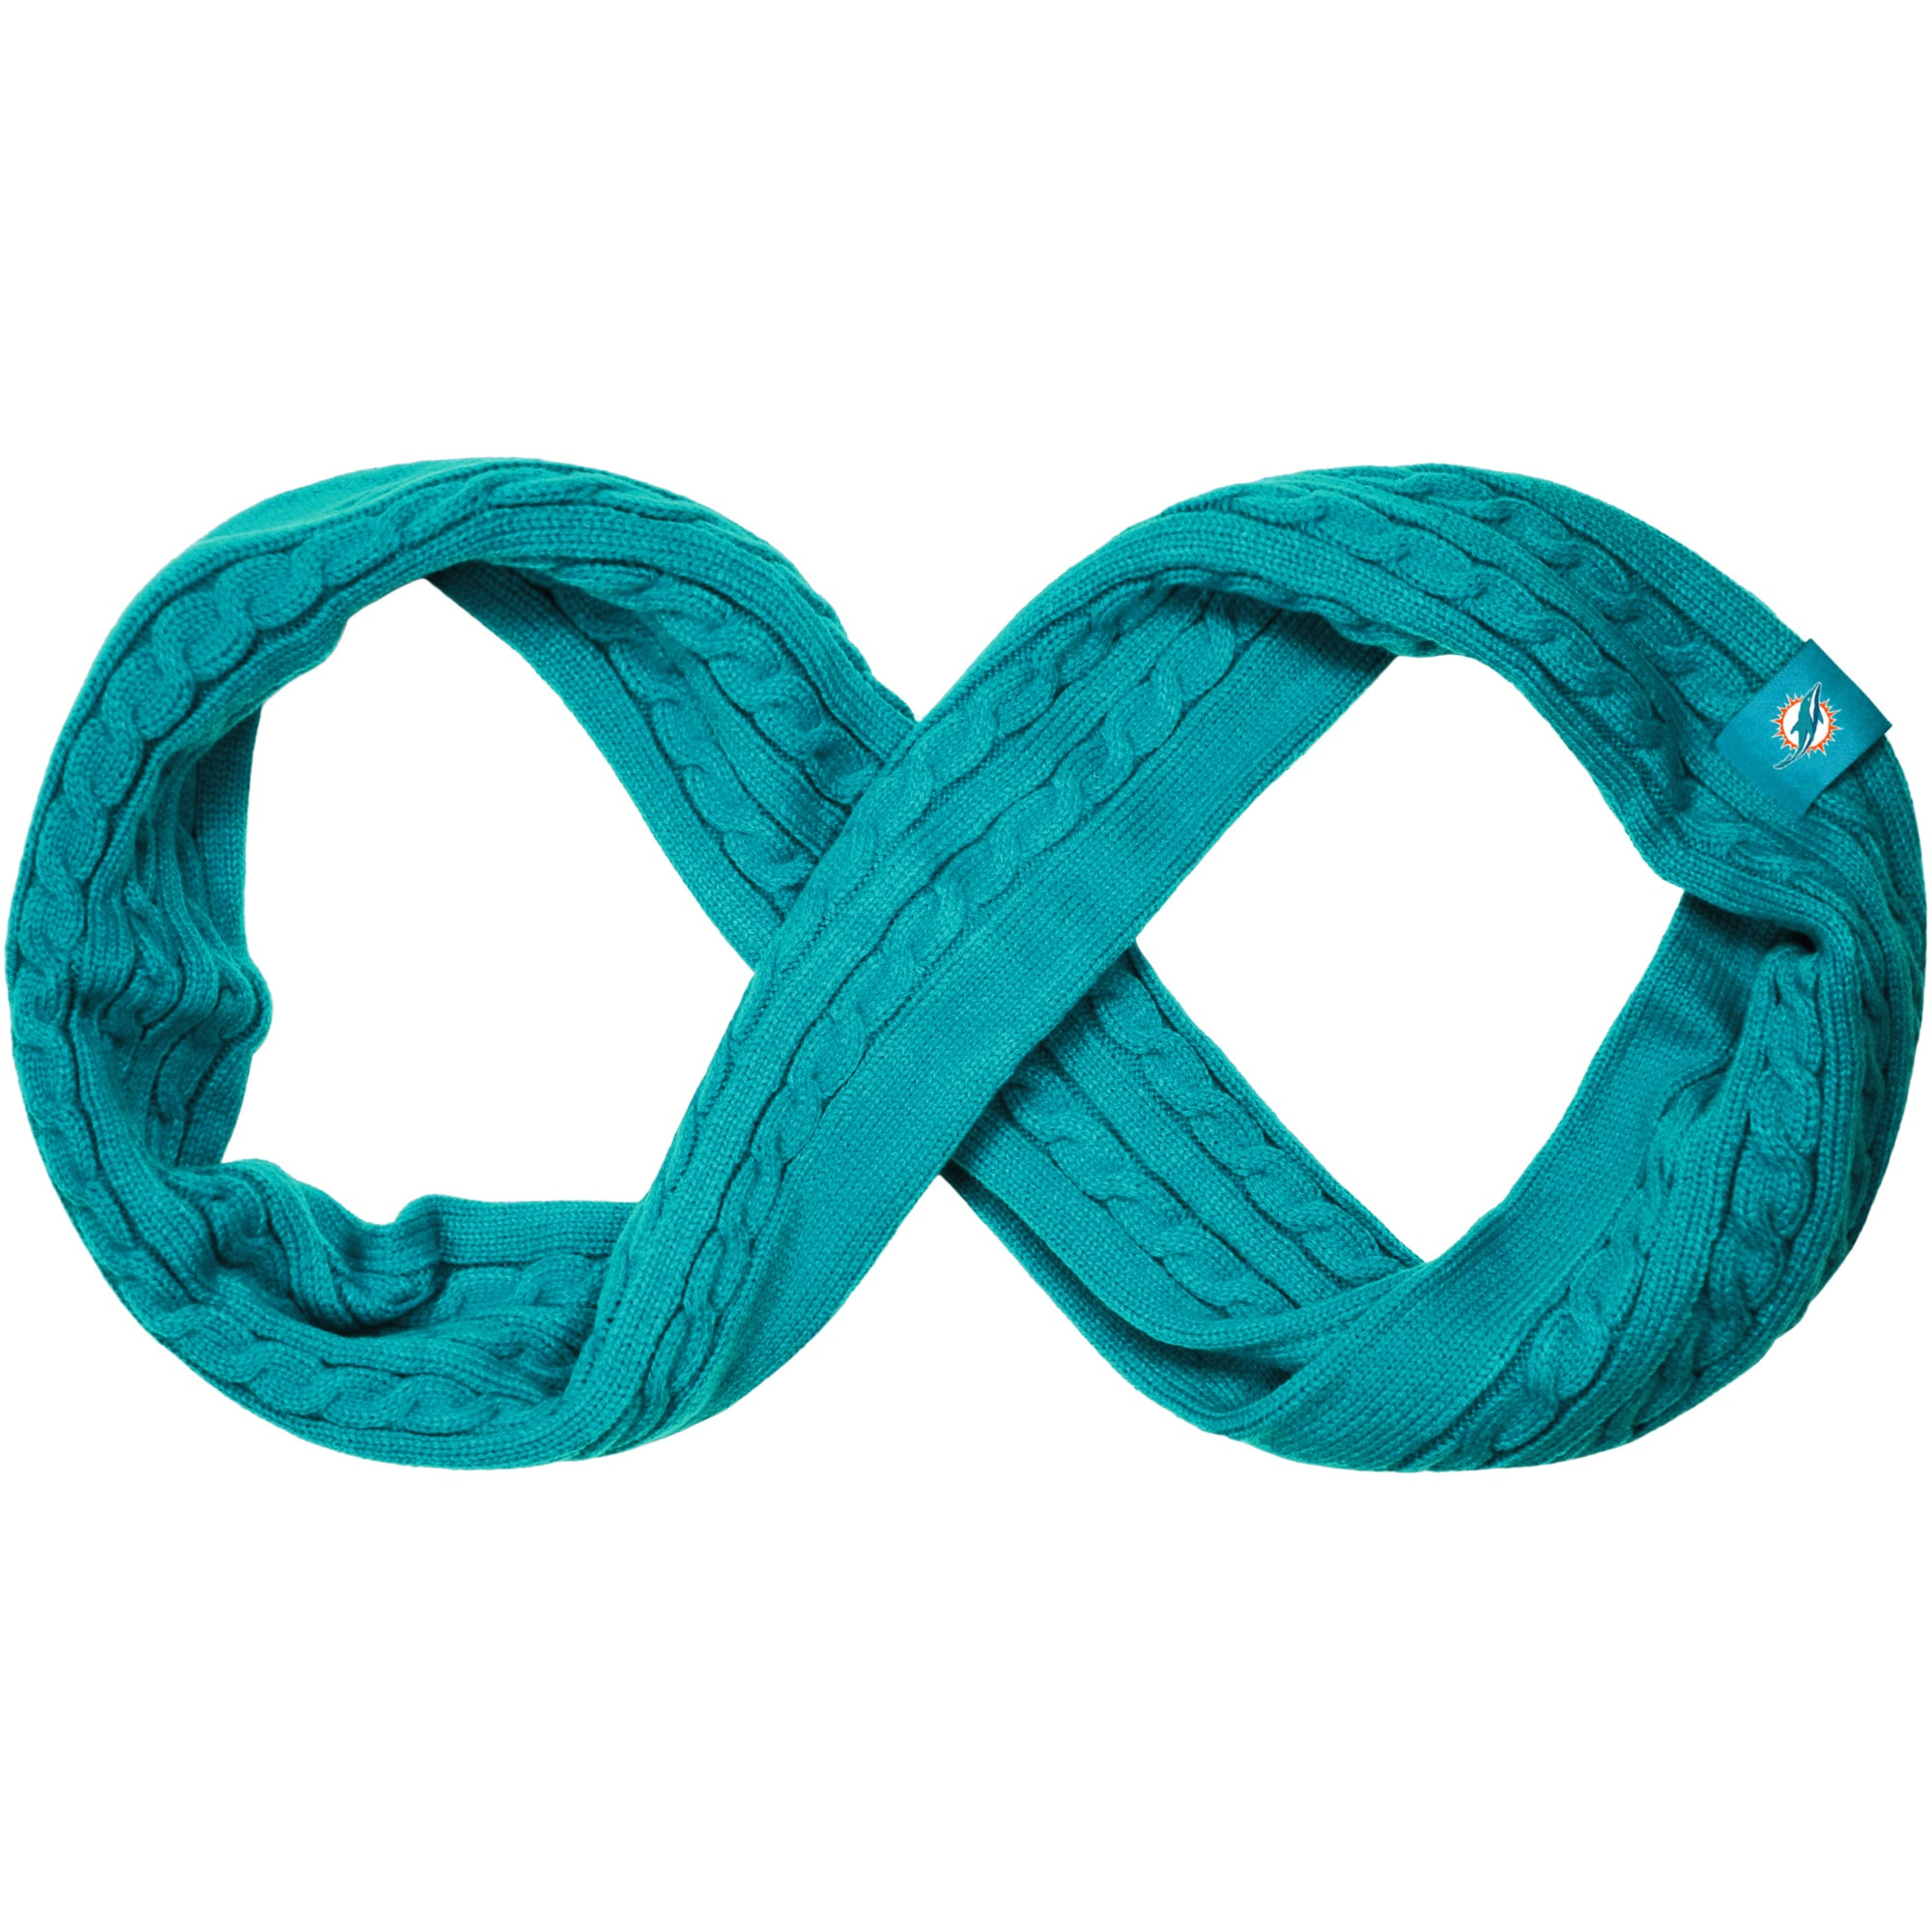 Miami Dolphins Women's Cable Knit Infinity Scarf - Teal